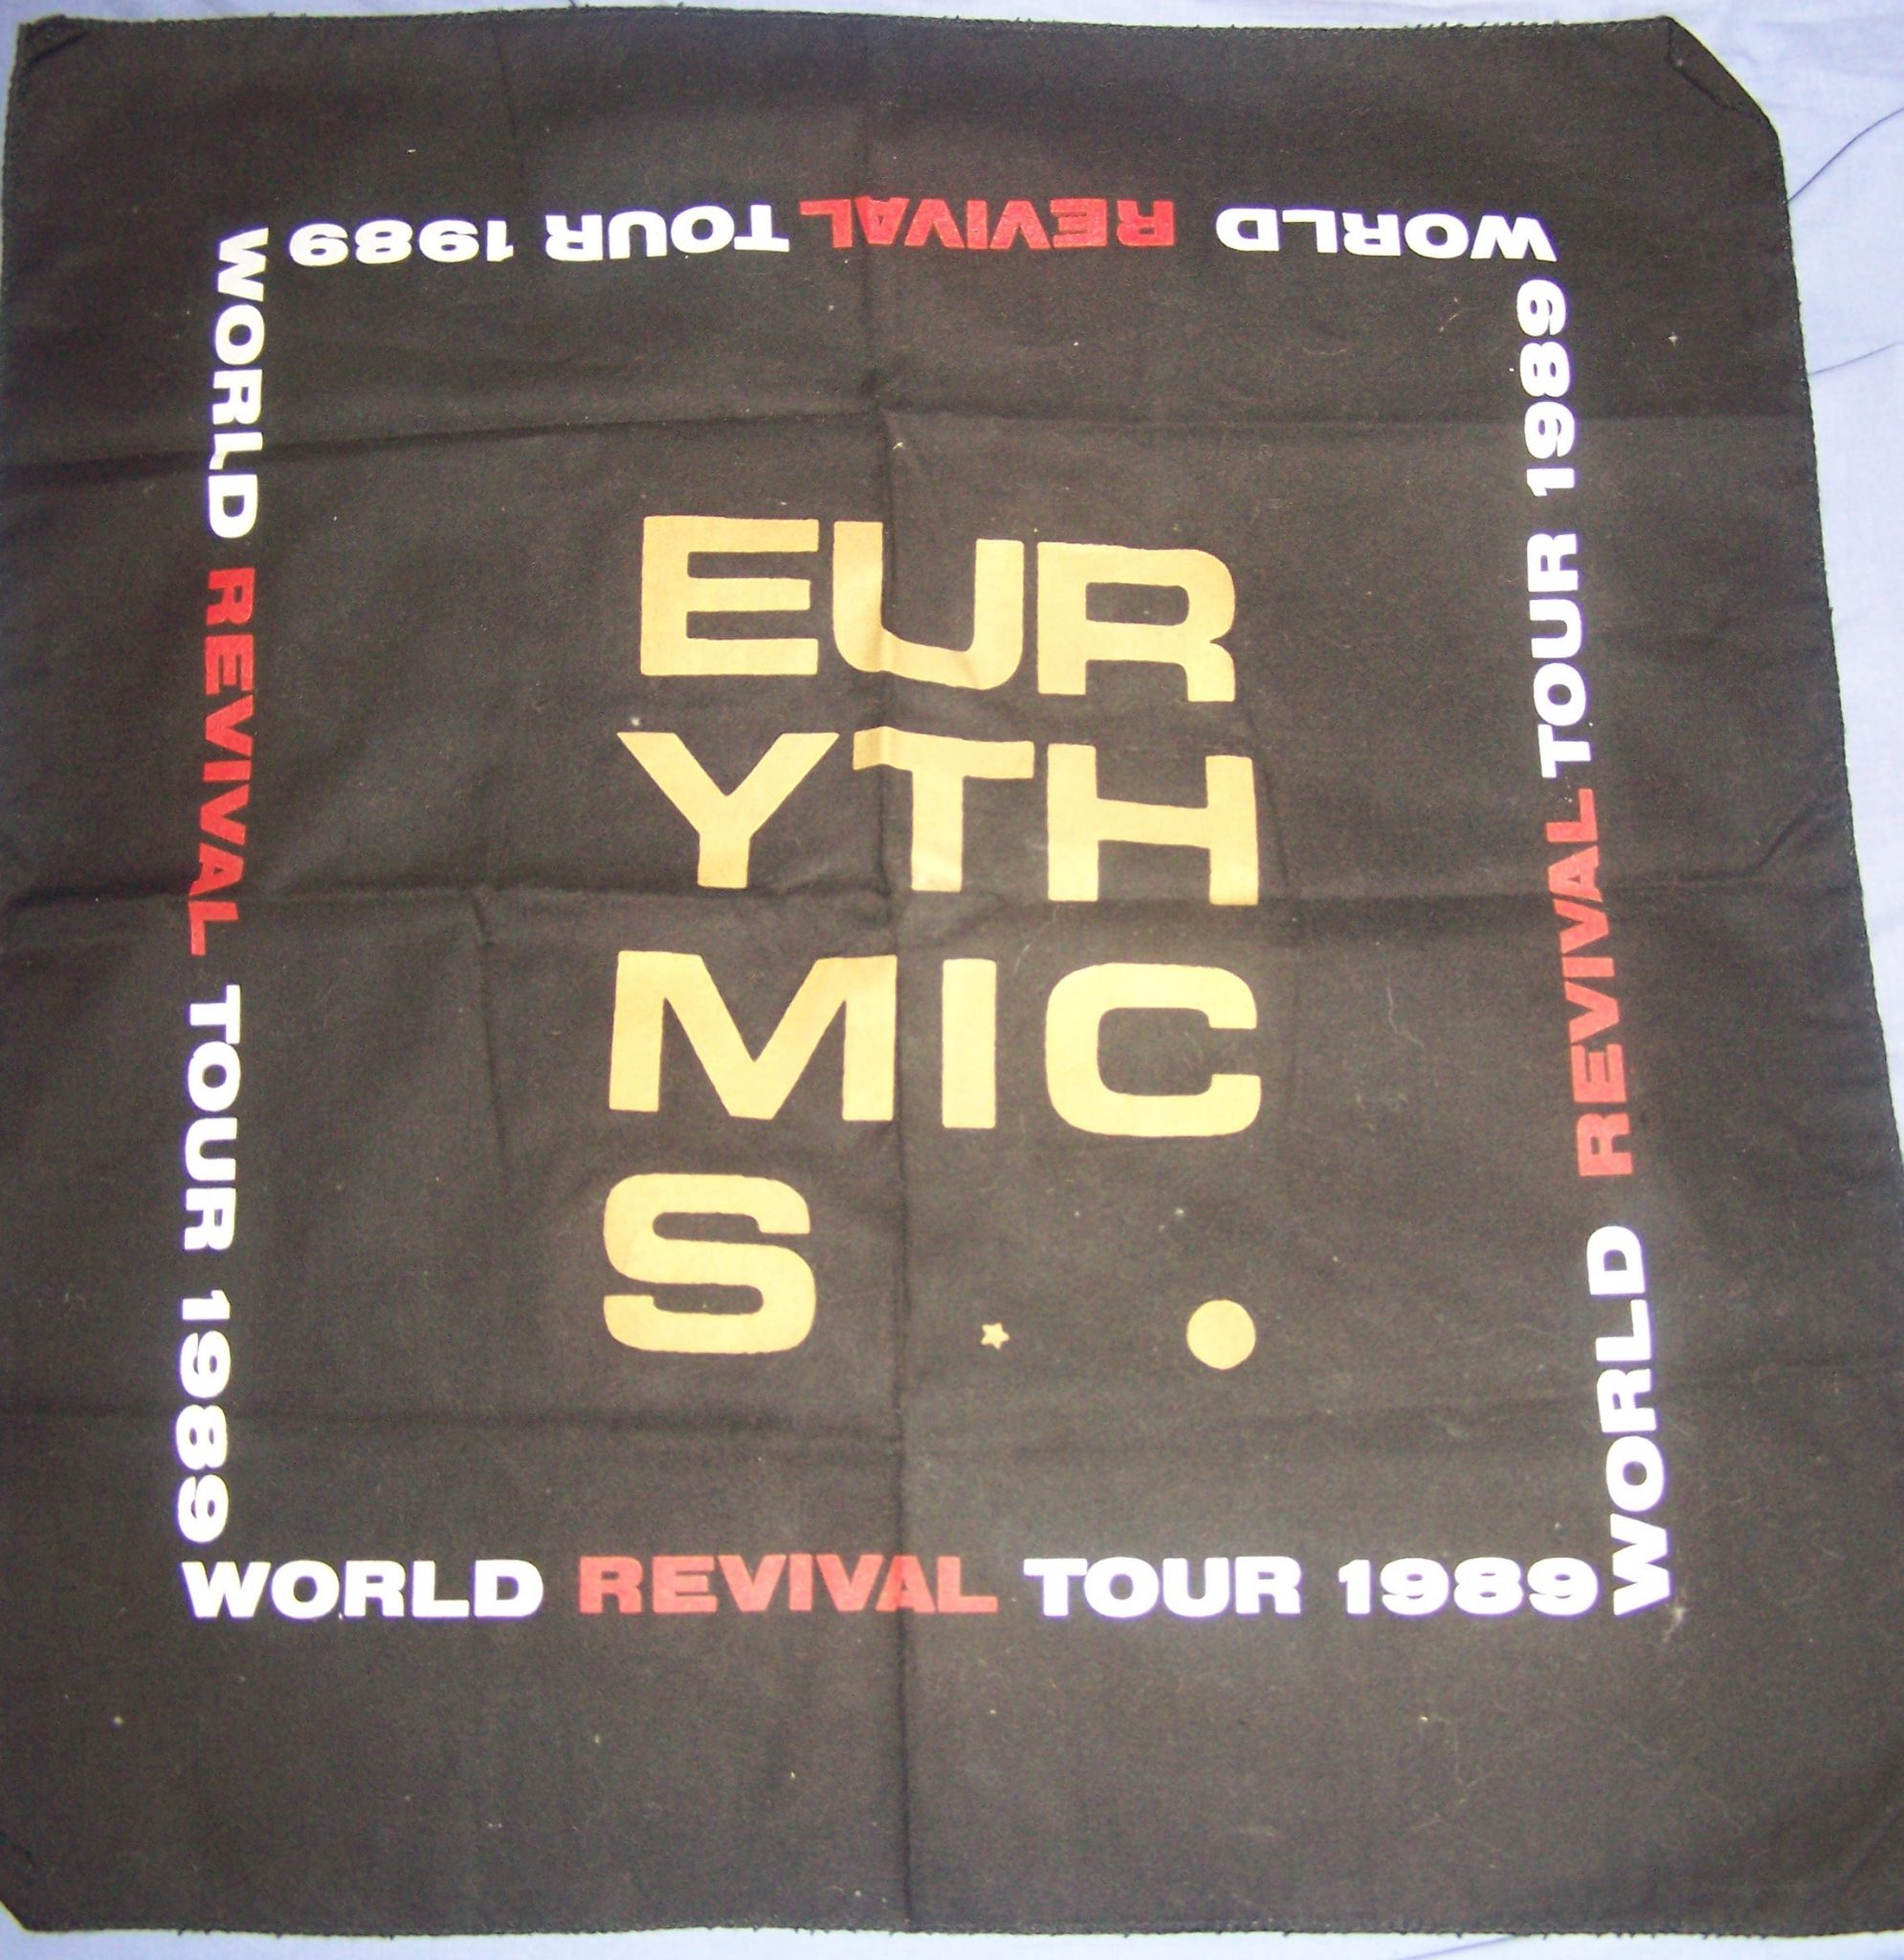 Memorabilia of the week – Revival Bandana